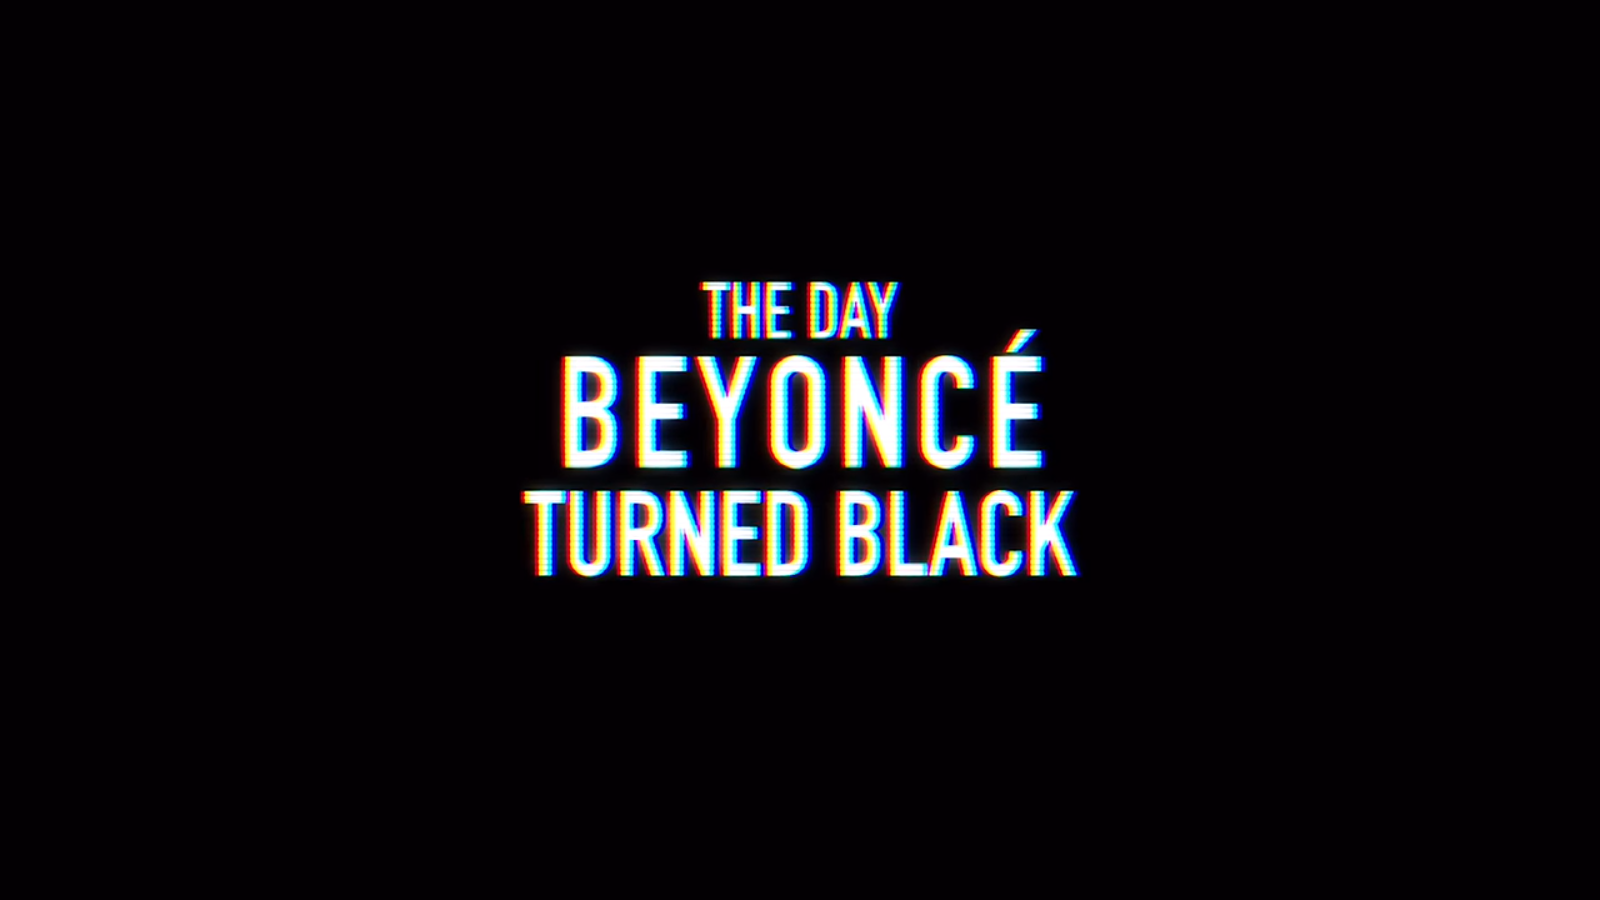 Beyonce Eyes Turn Black Comedy: The Day...